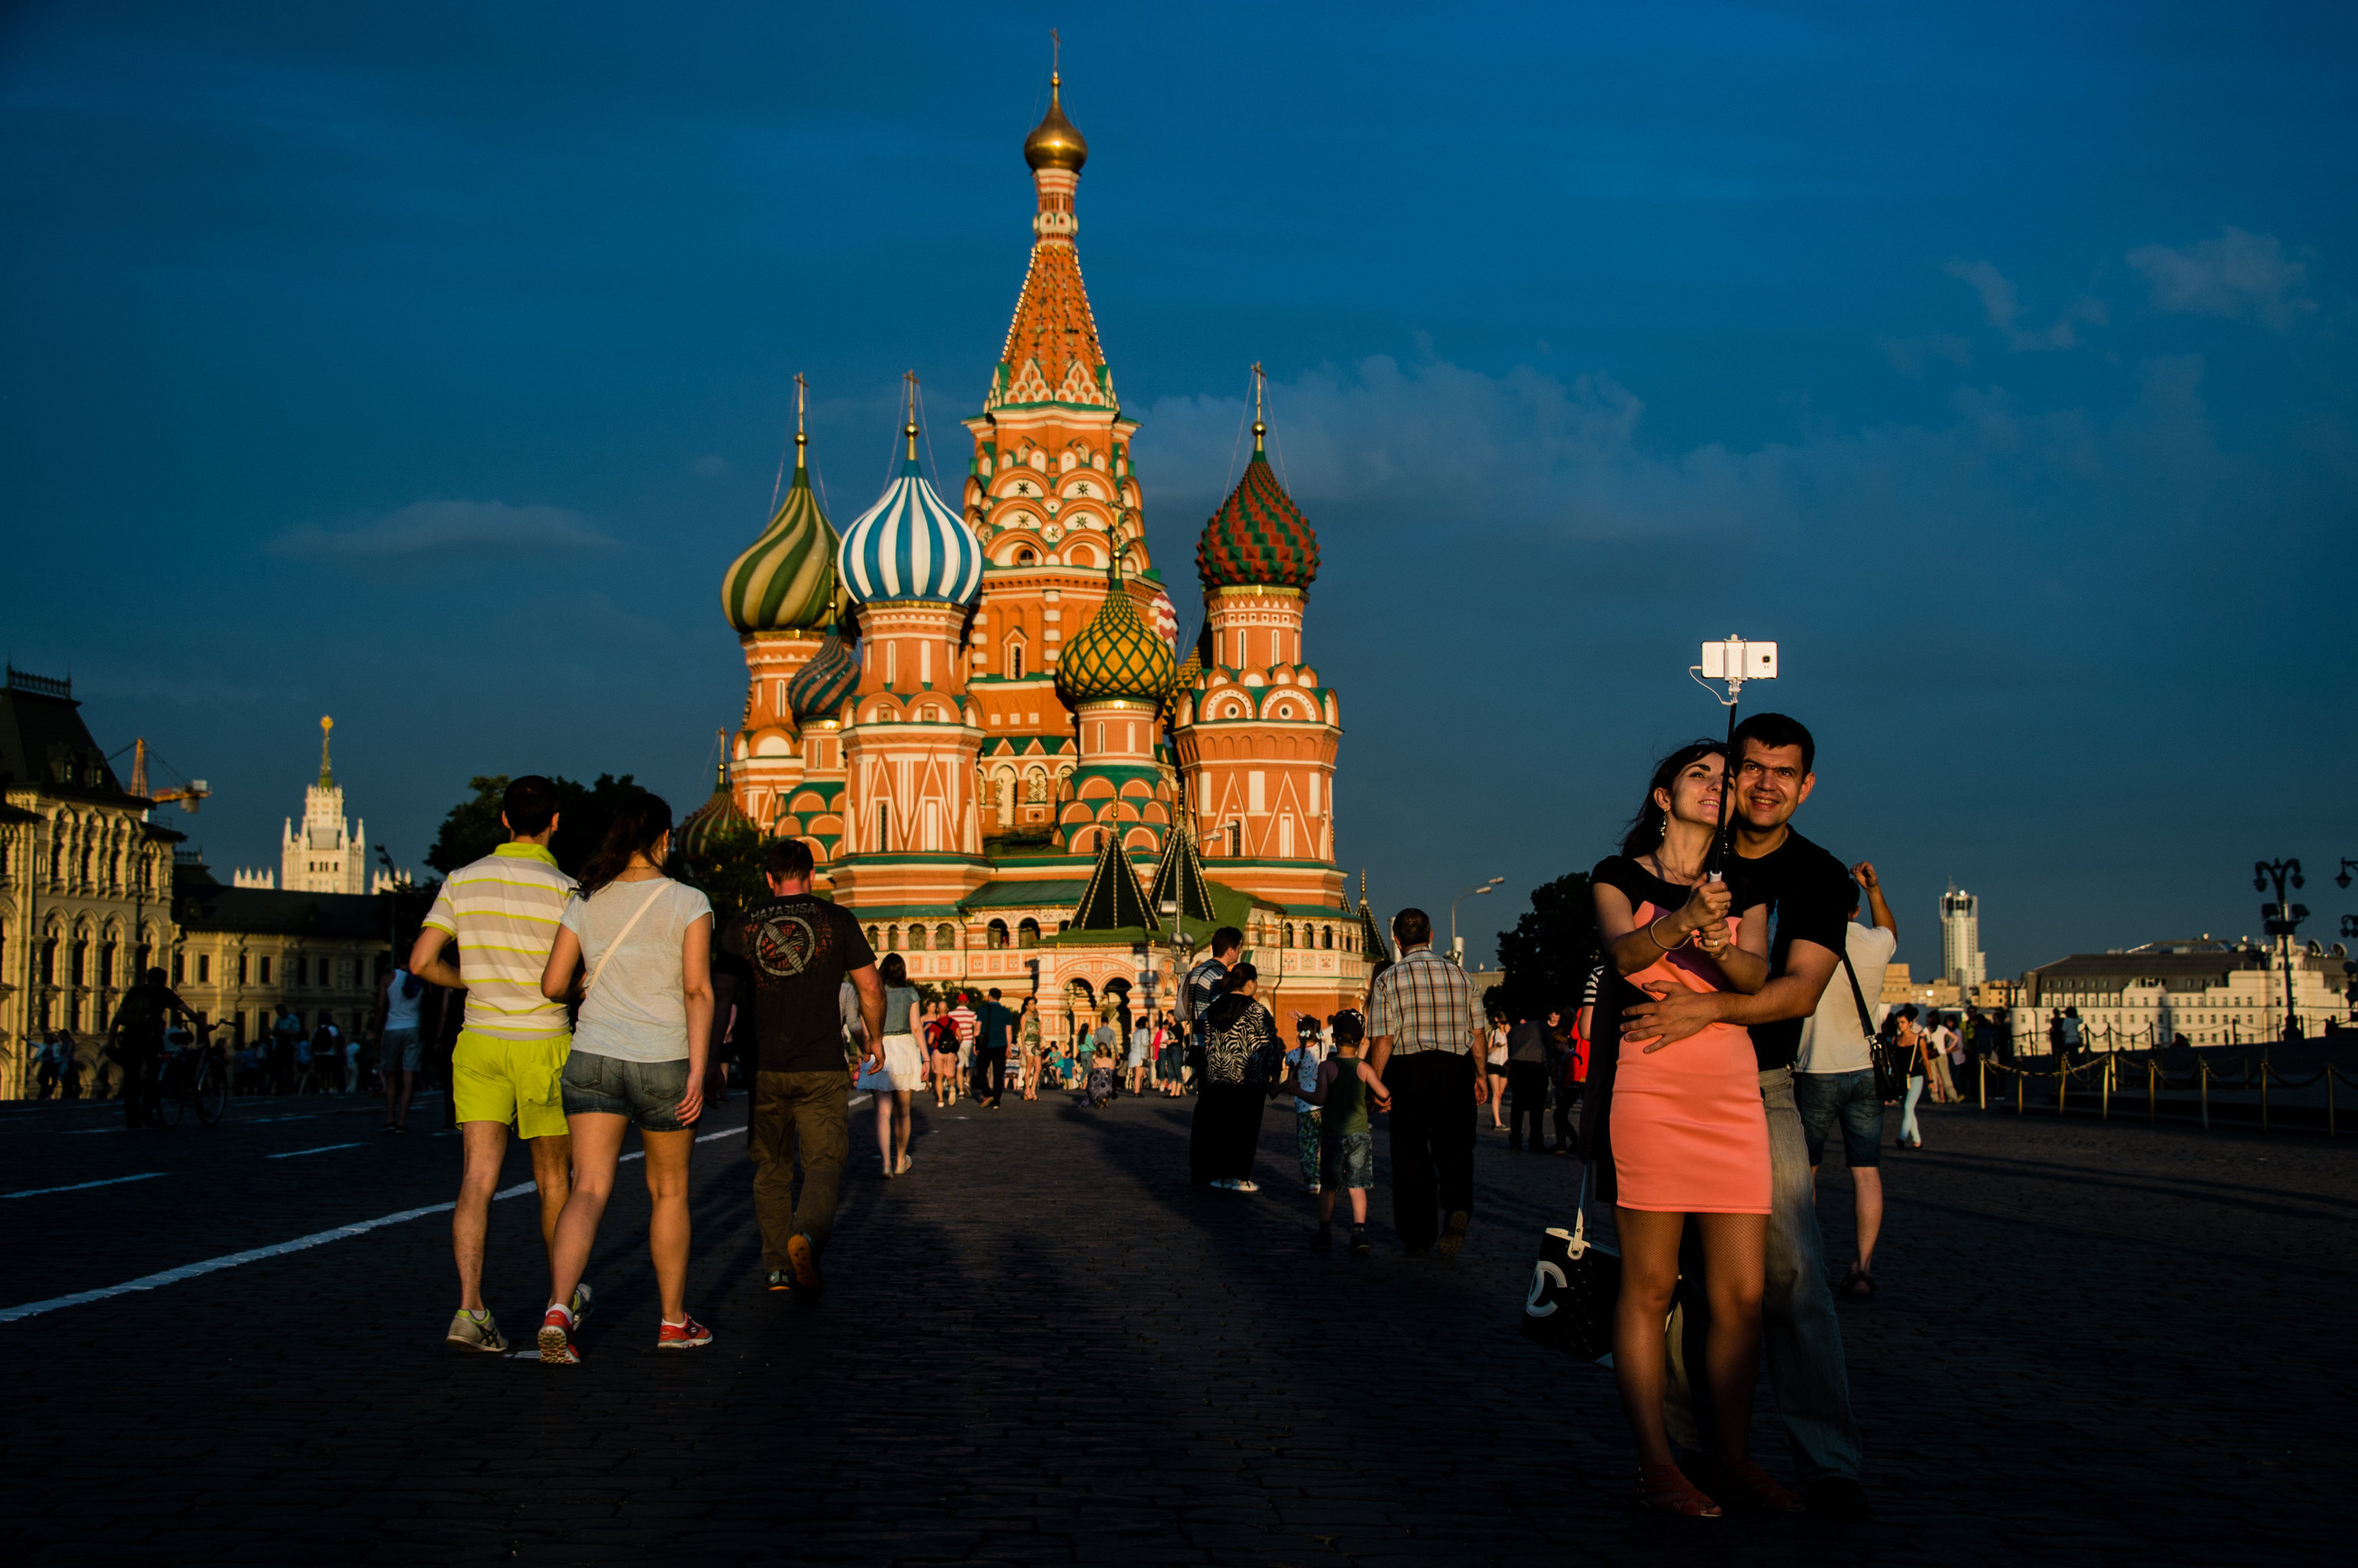 City residents and guests on Moscow's Red Square. Background: Saint Basil's Cathedral